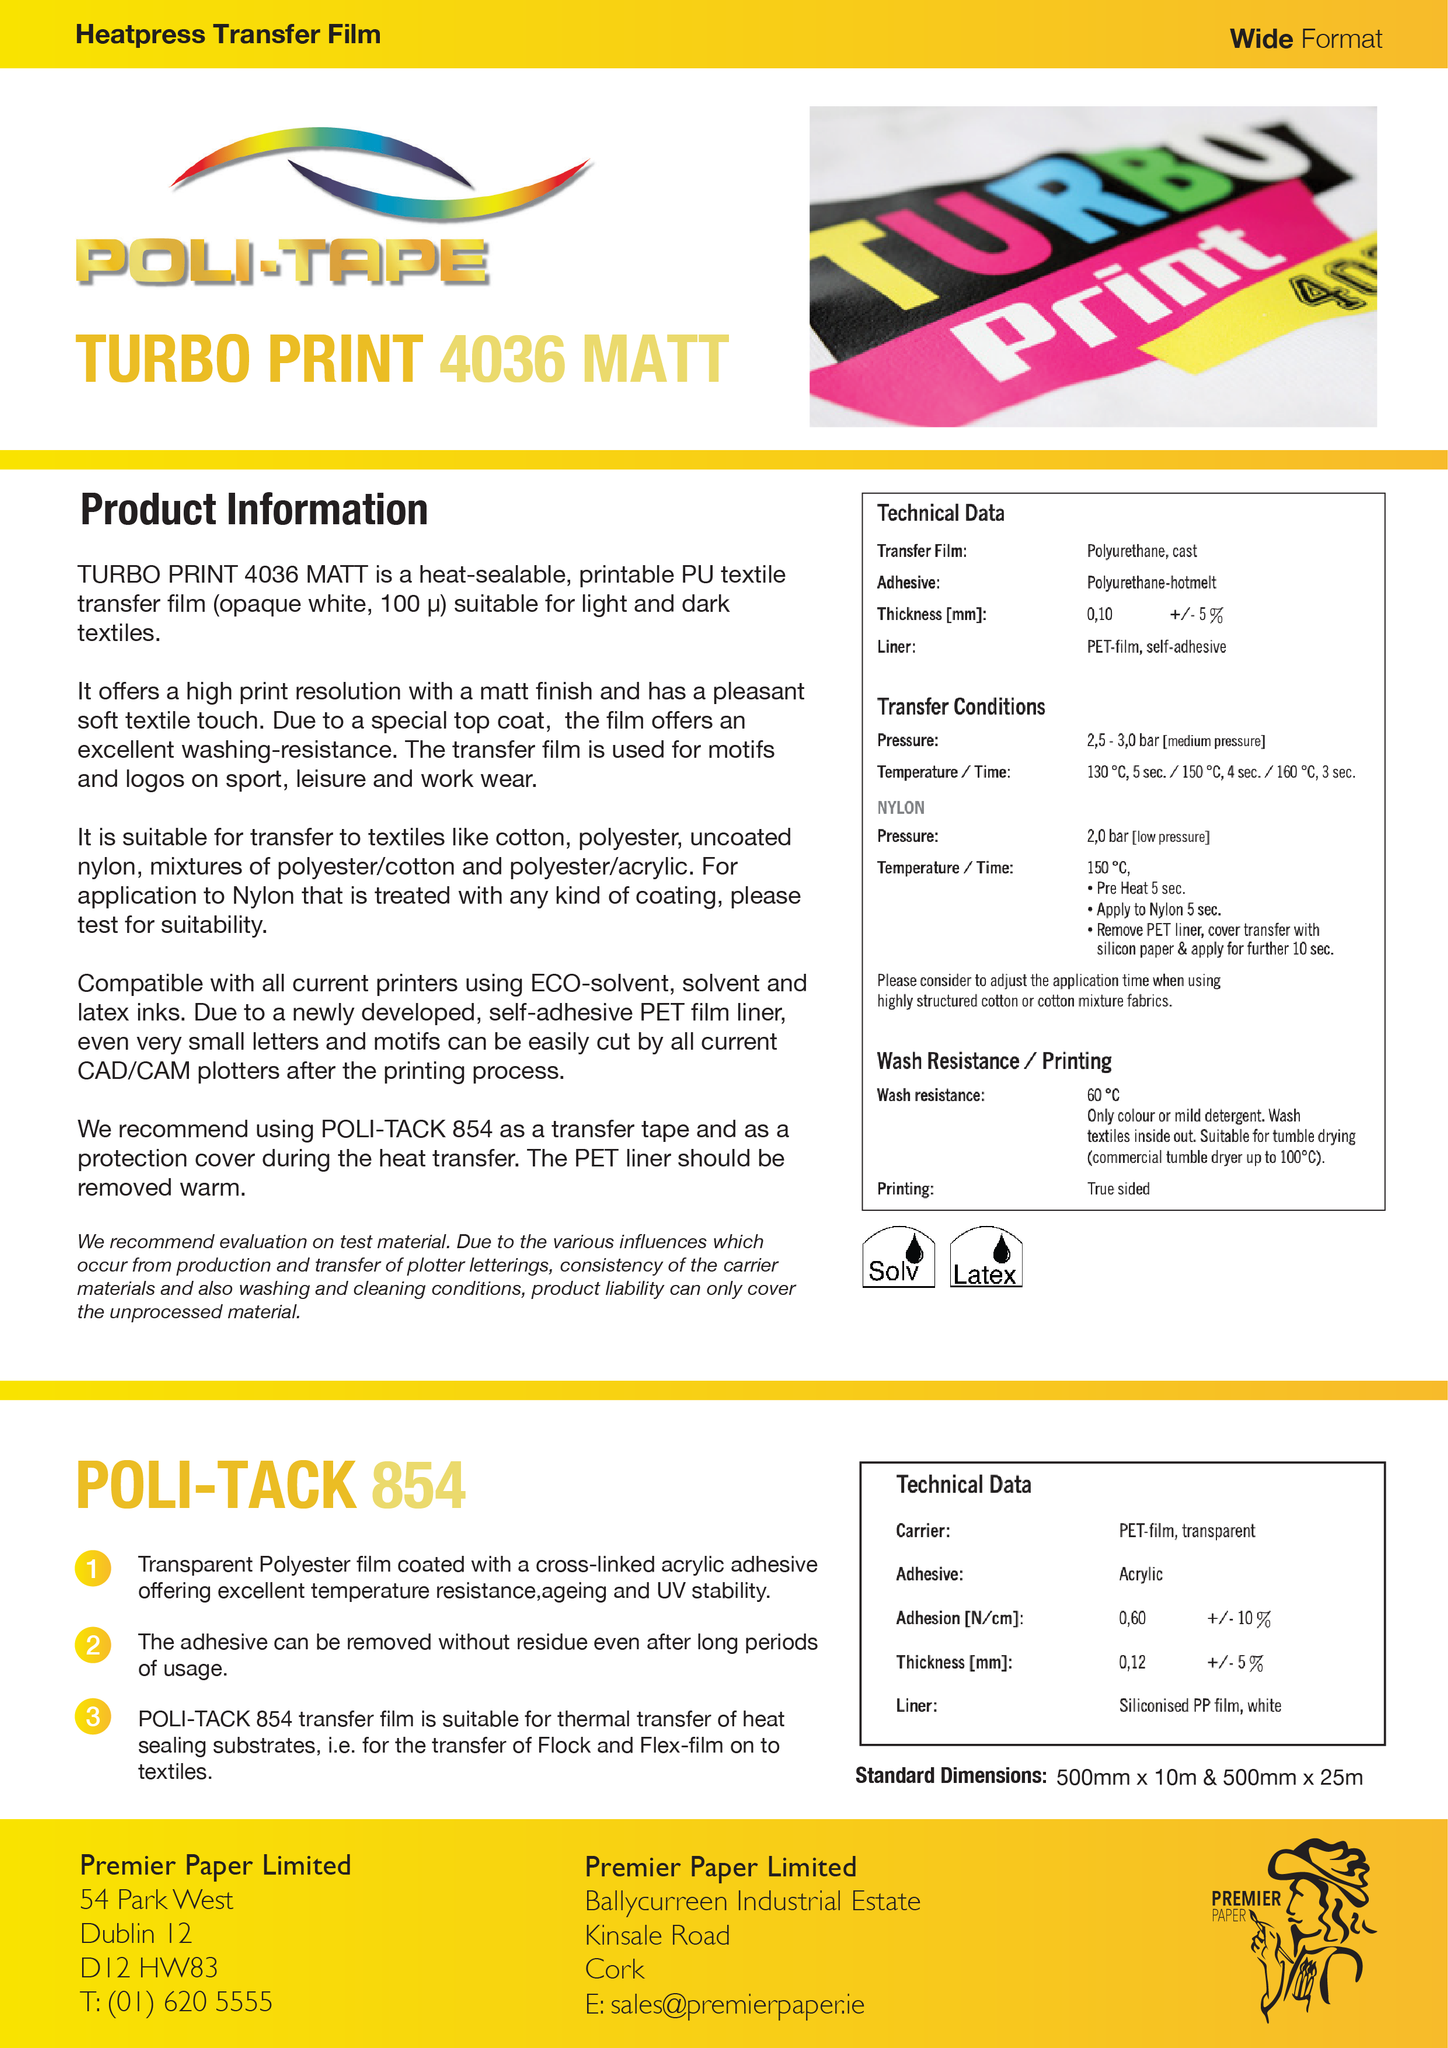 POLI-TAPE Turbo Print